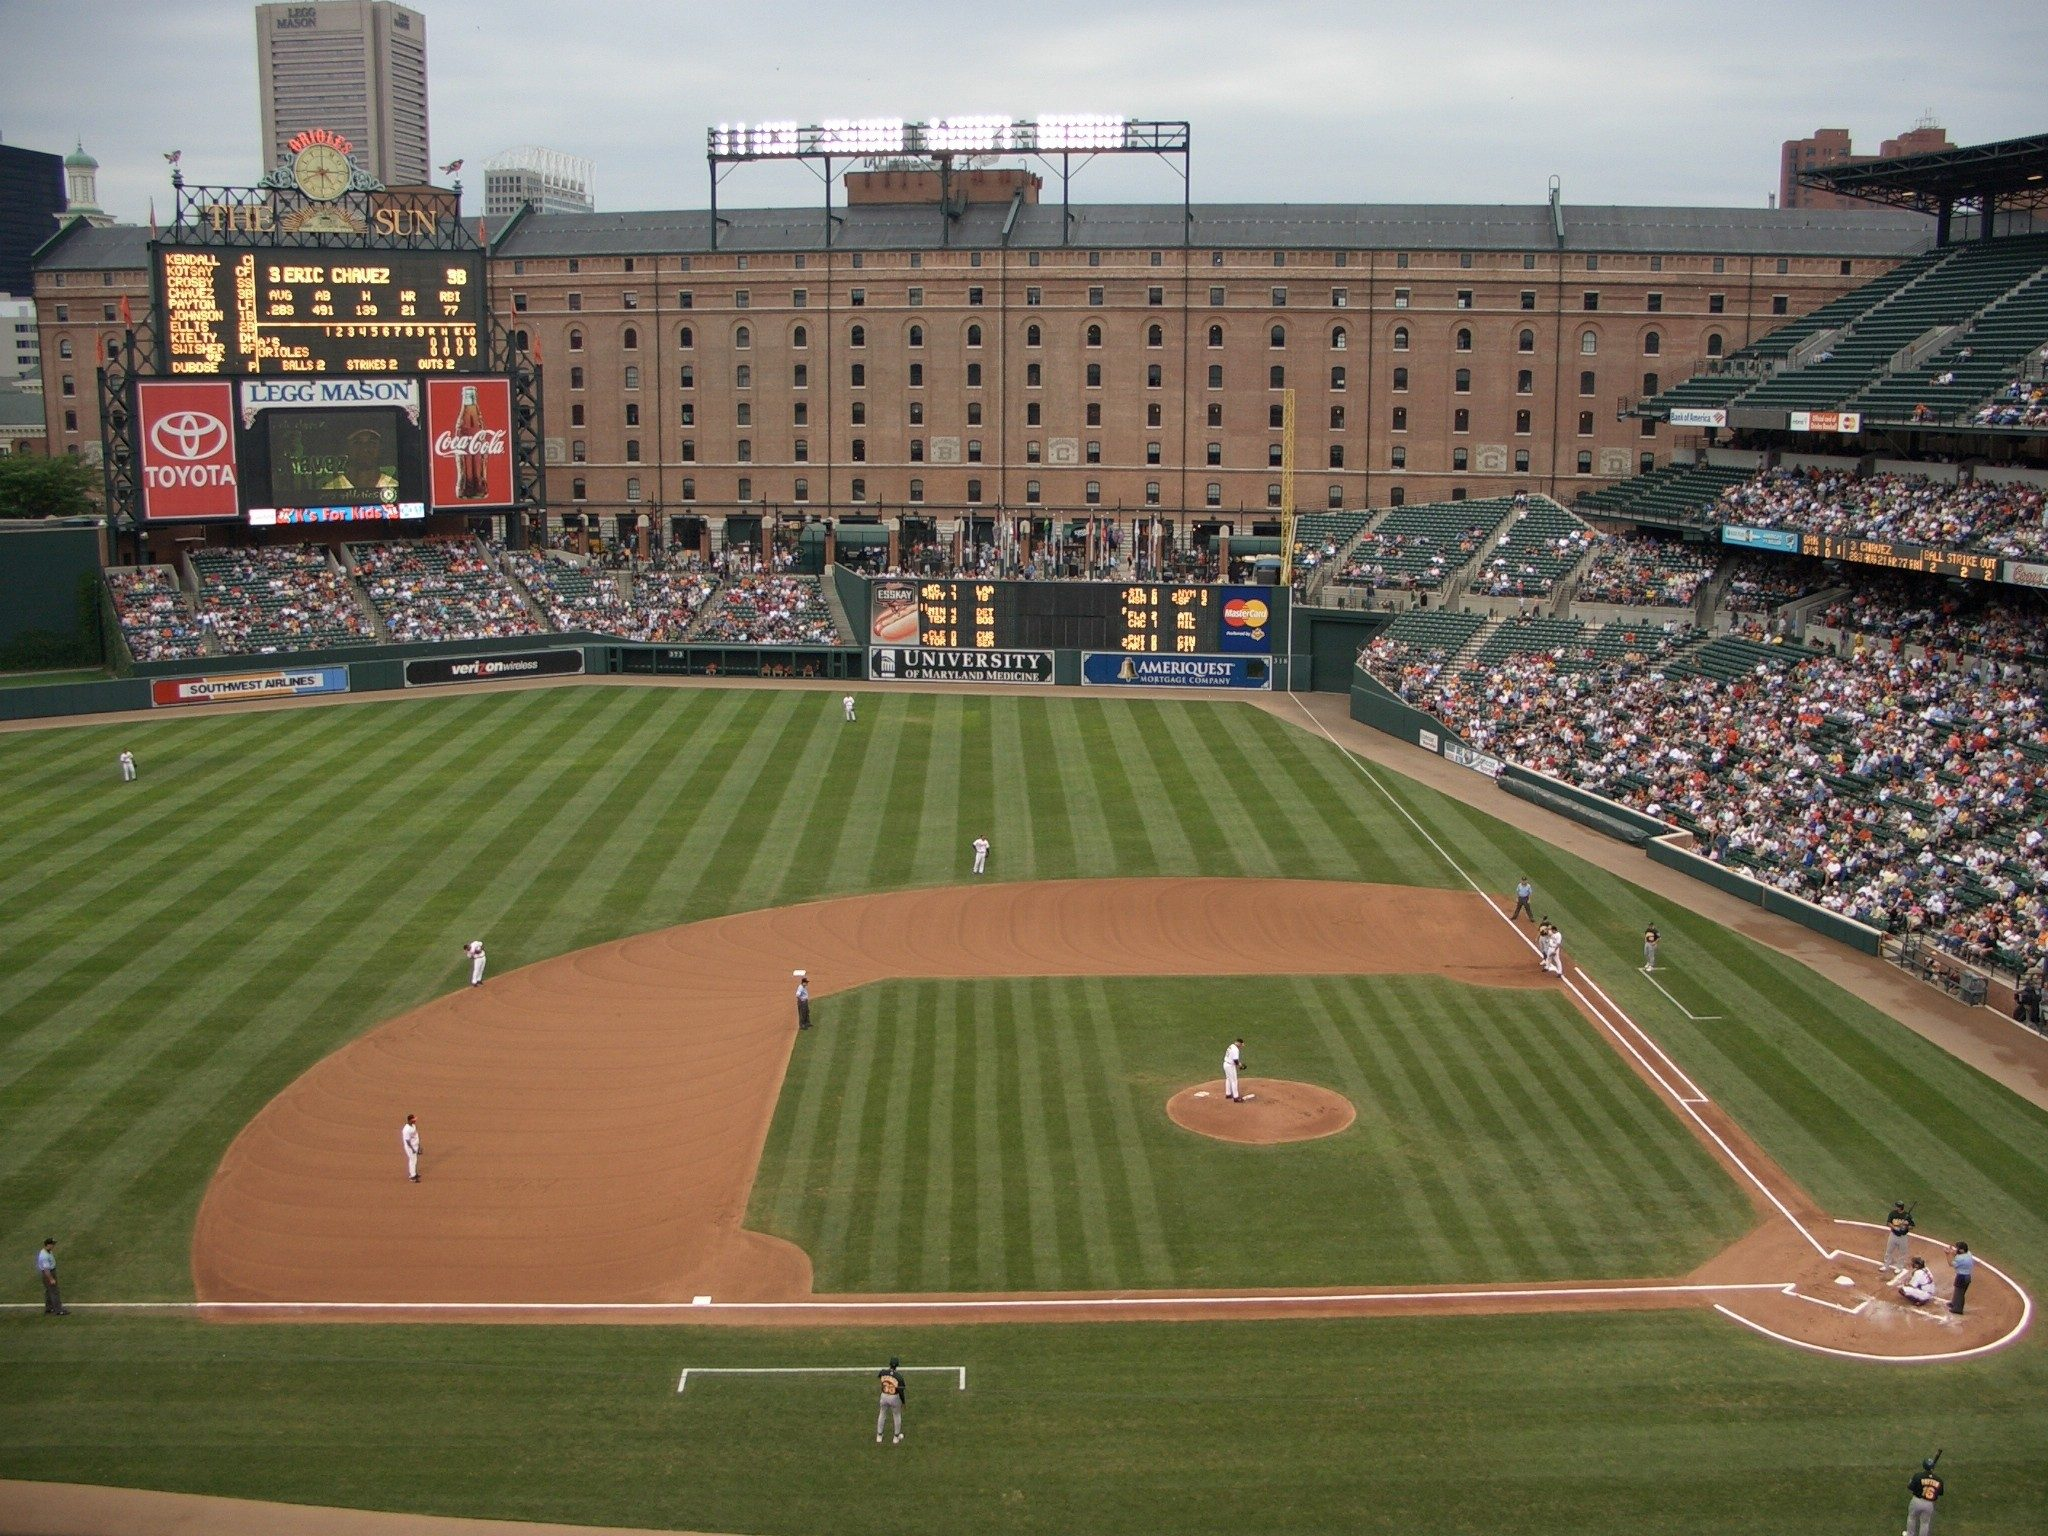 5. Oriole Park at Camden Yards - Baltimore, Maryland; home of the Orioles.